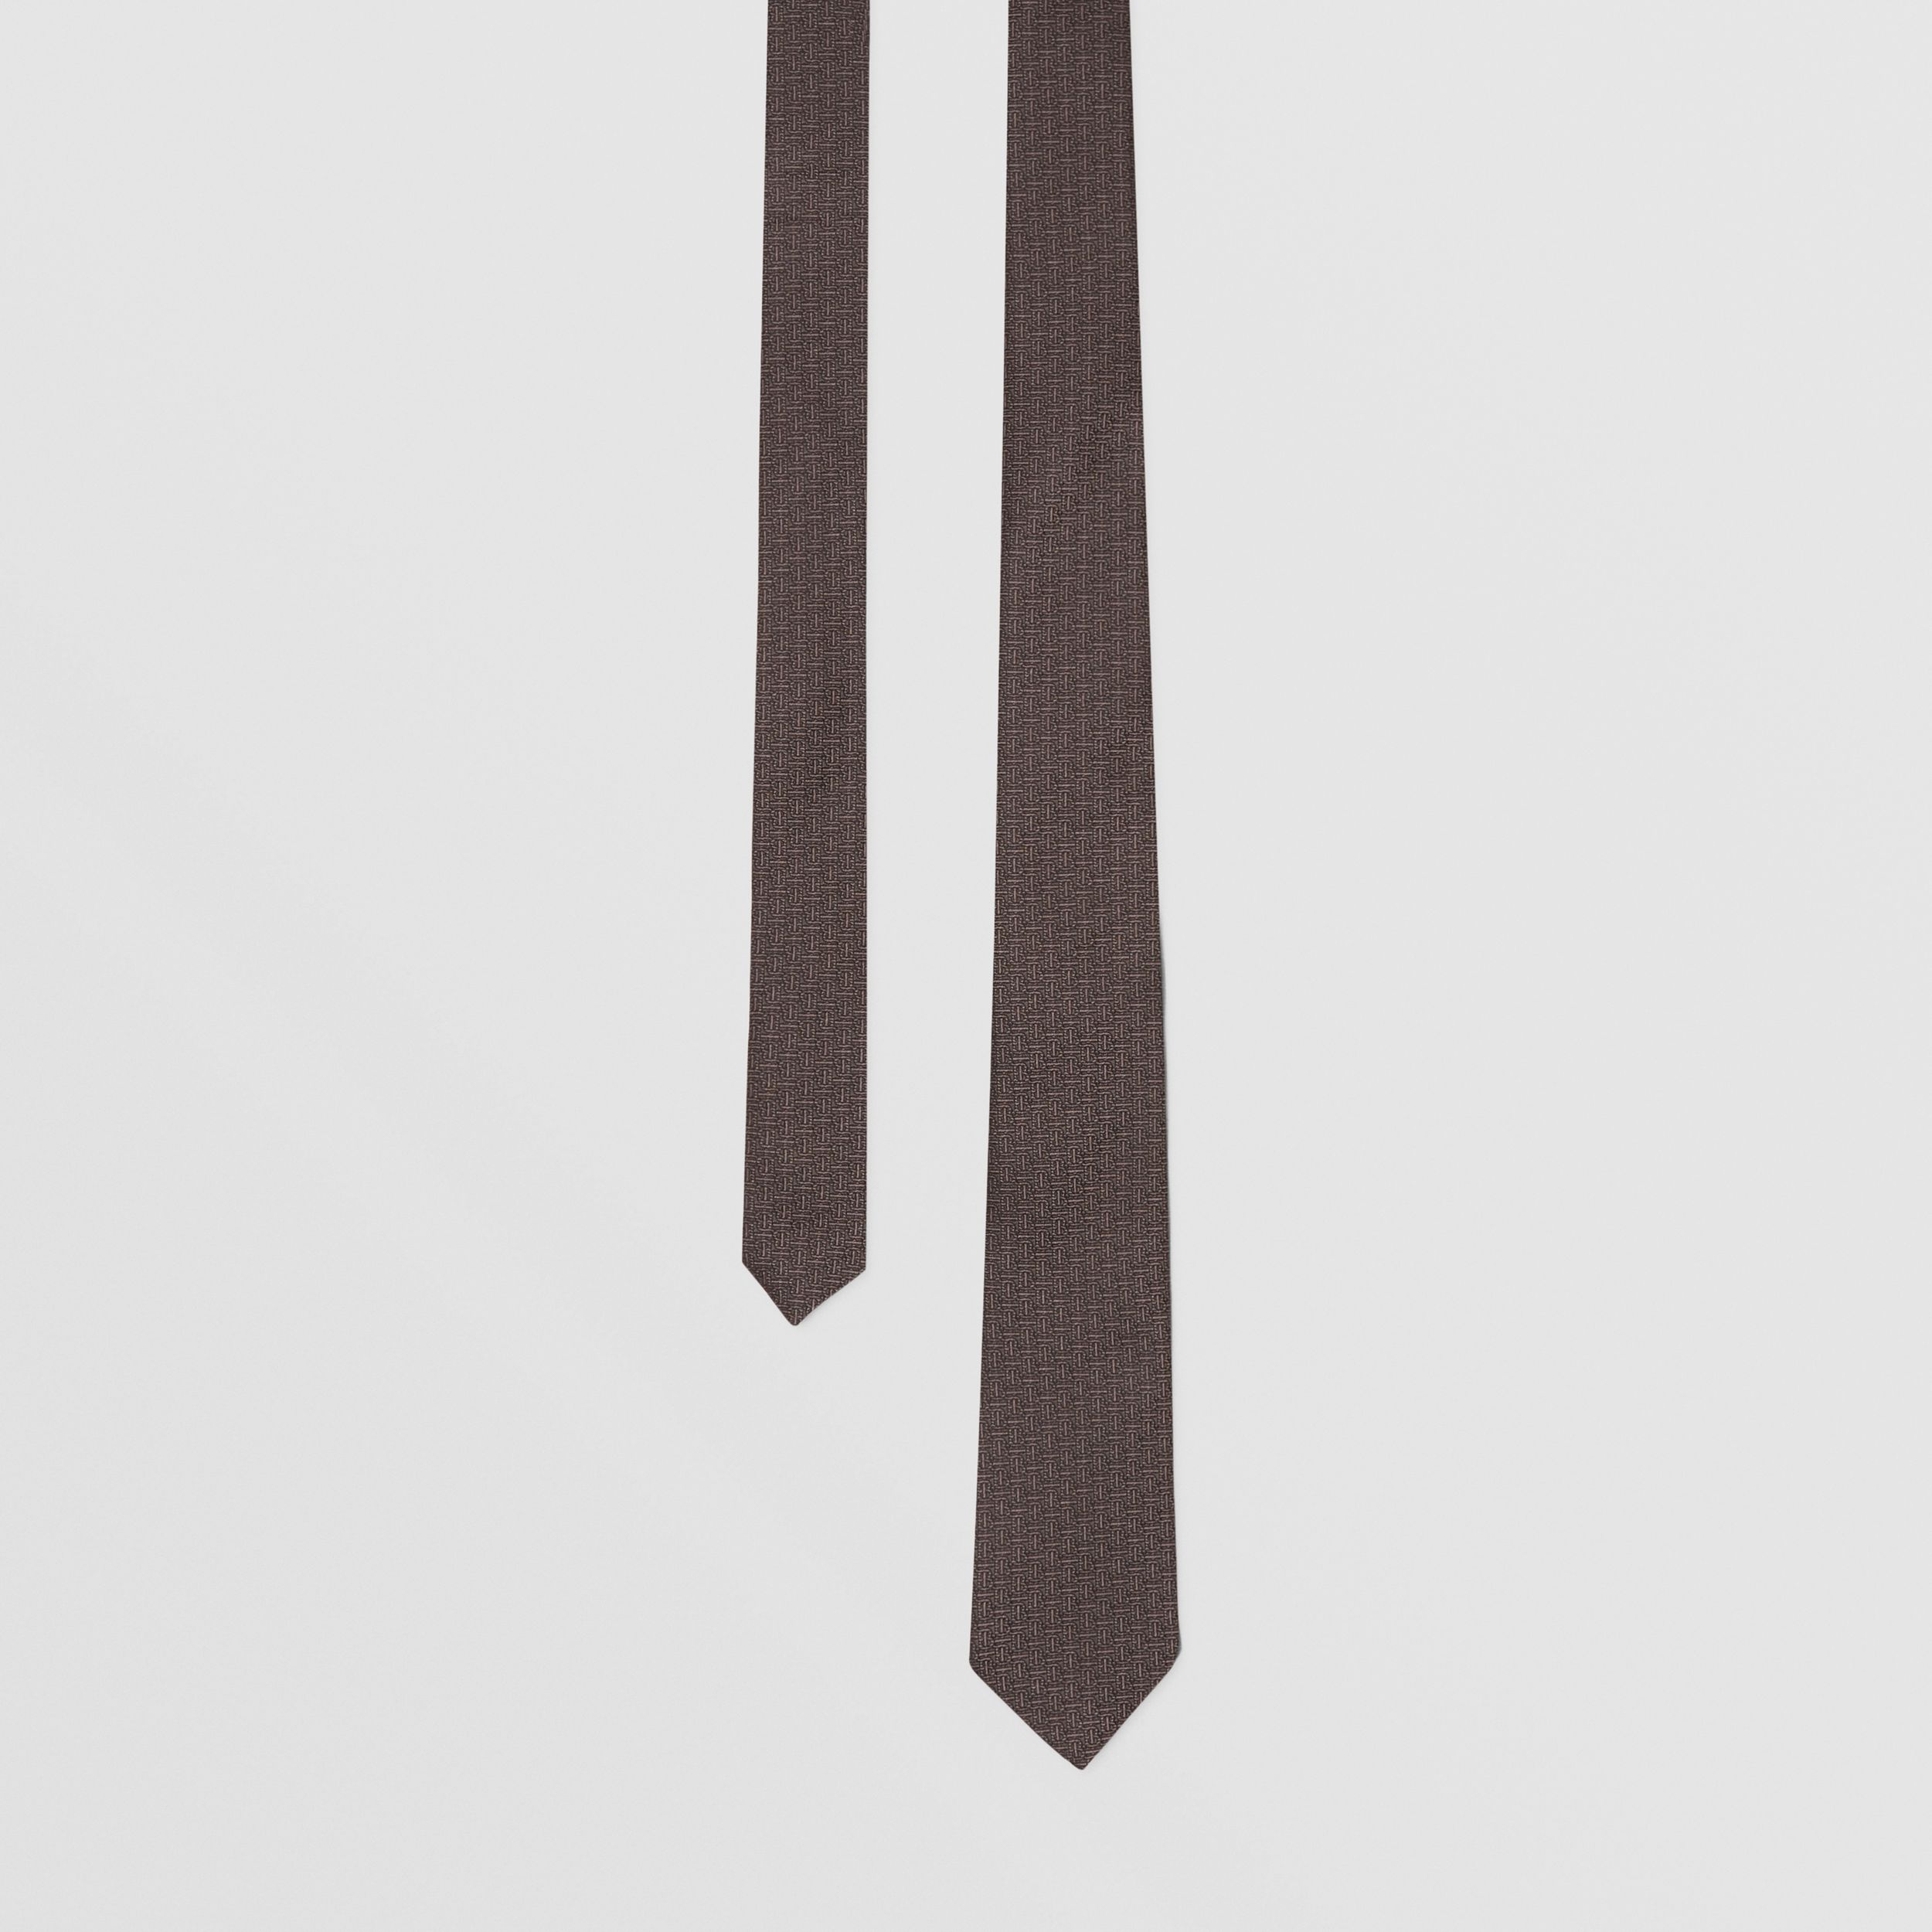 Classic Cut Monogram Silk Jacquard Tie in Charcoal - Men | Burberry - 1